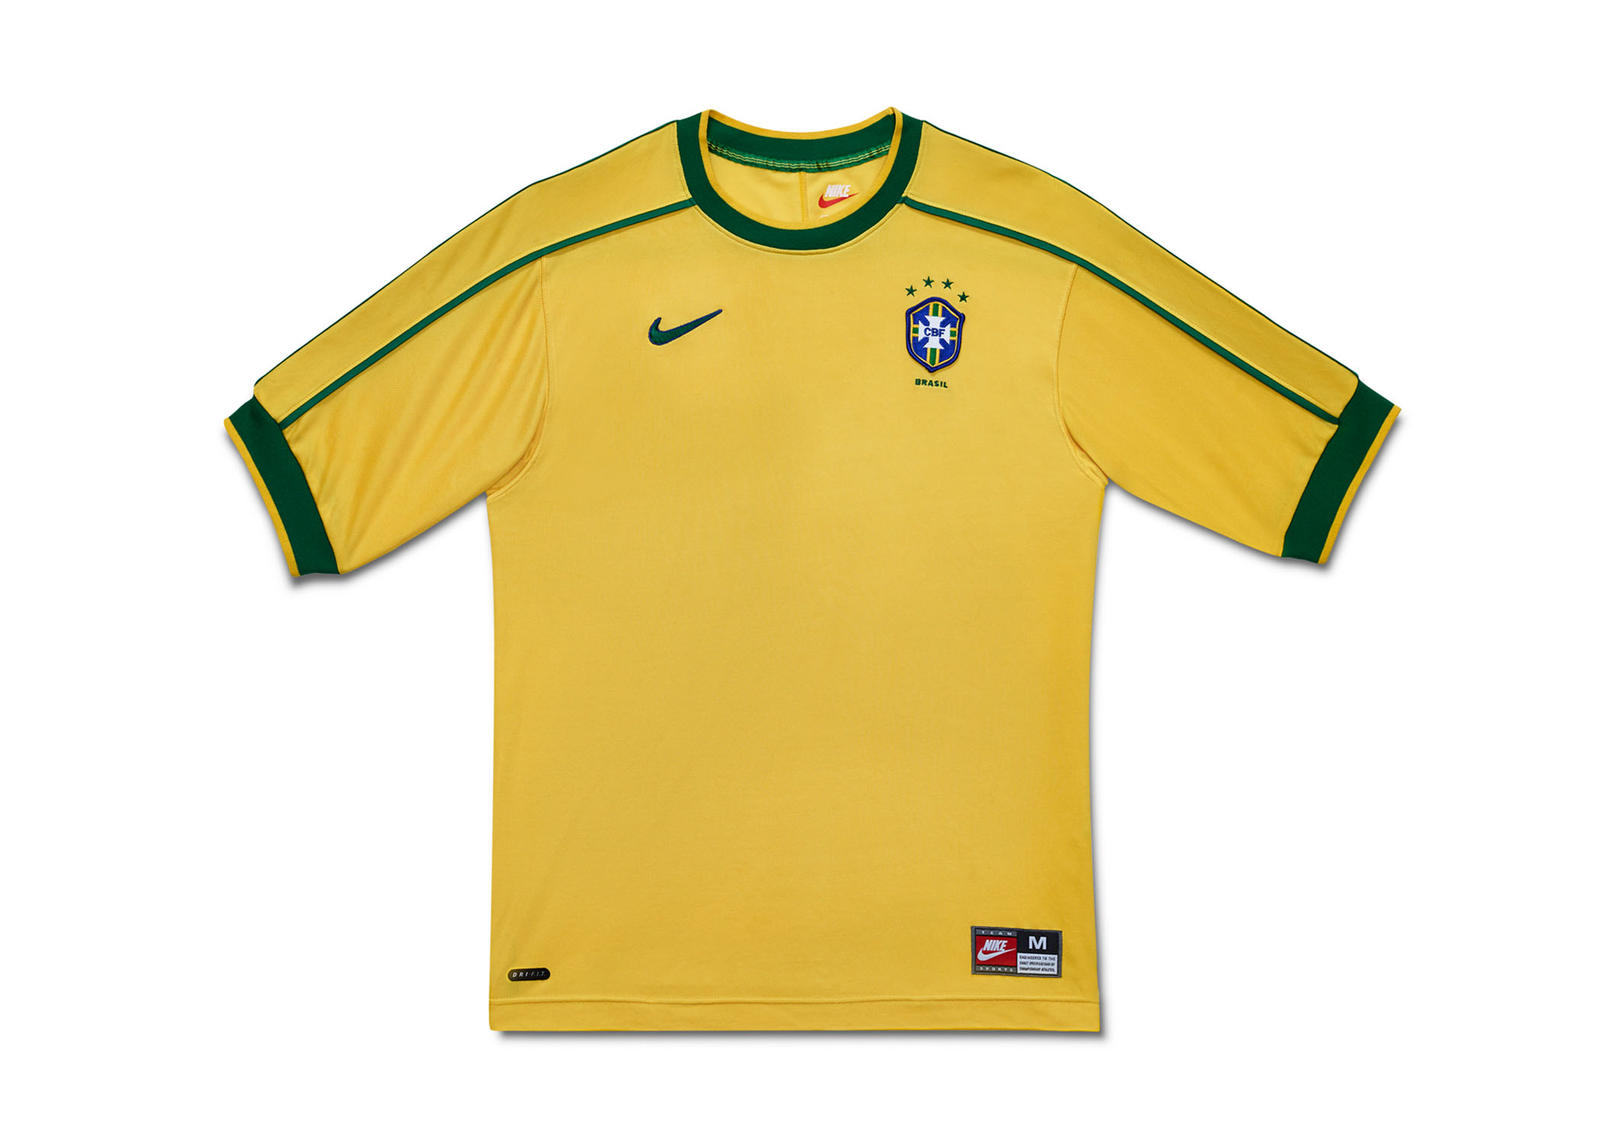 A Retrospective of Brasil's Yellow Jersey 1